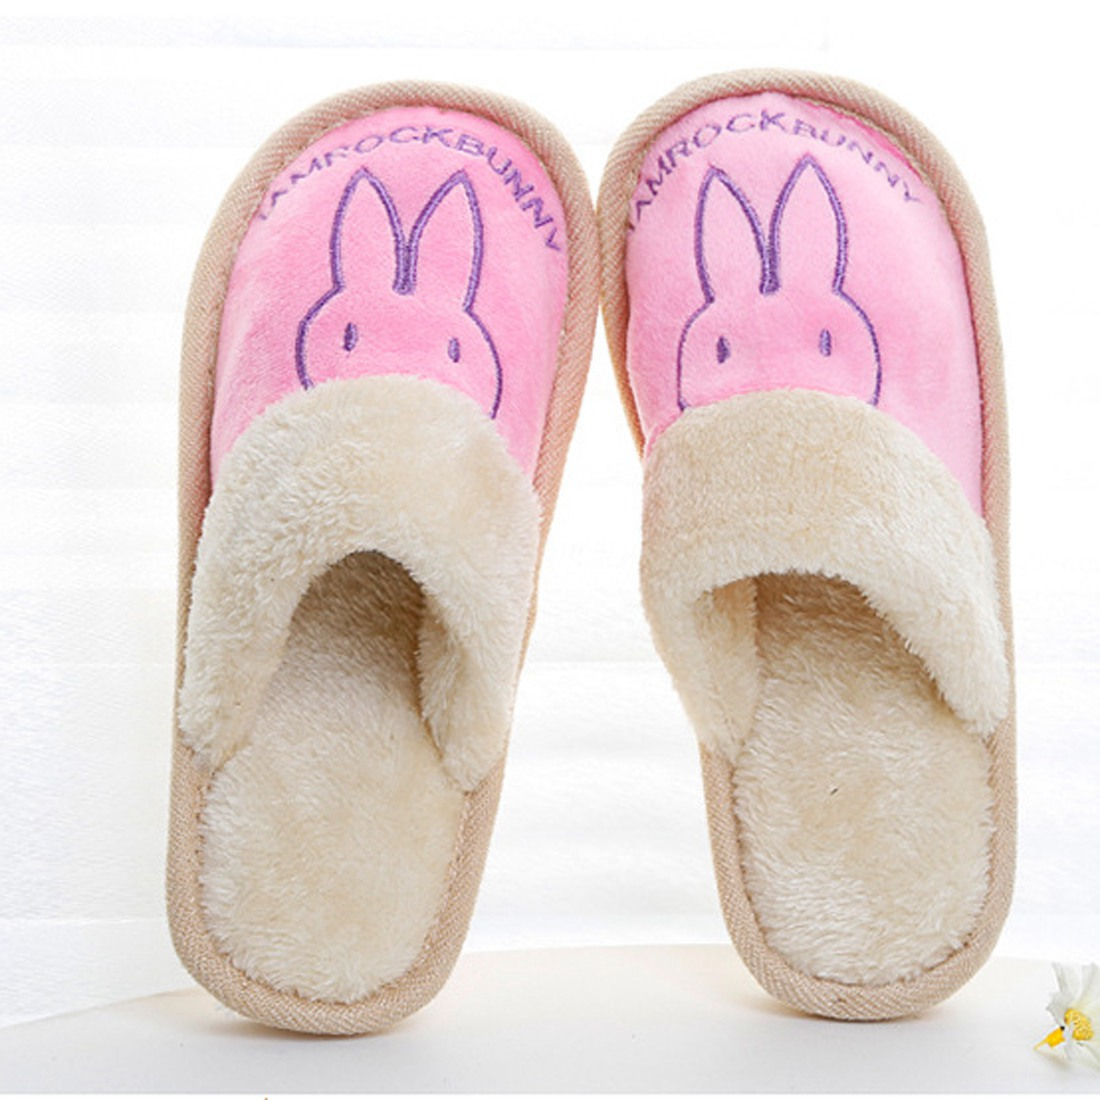 Unisex Home Slippers Healthy Hemp Material Women Men Shoes